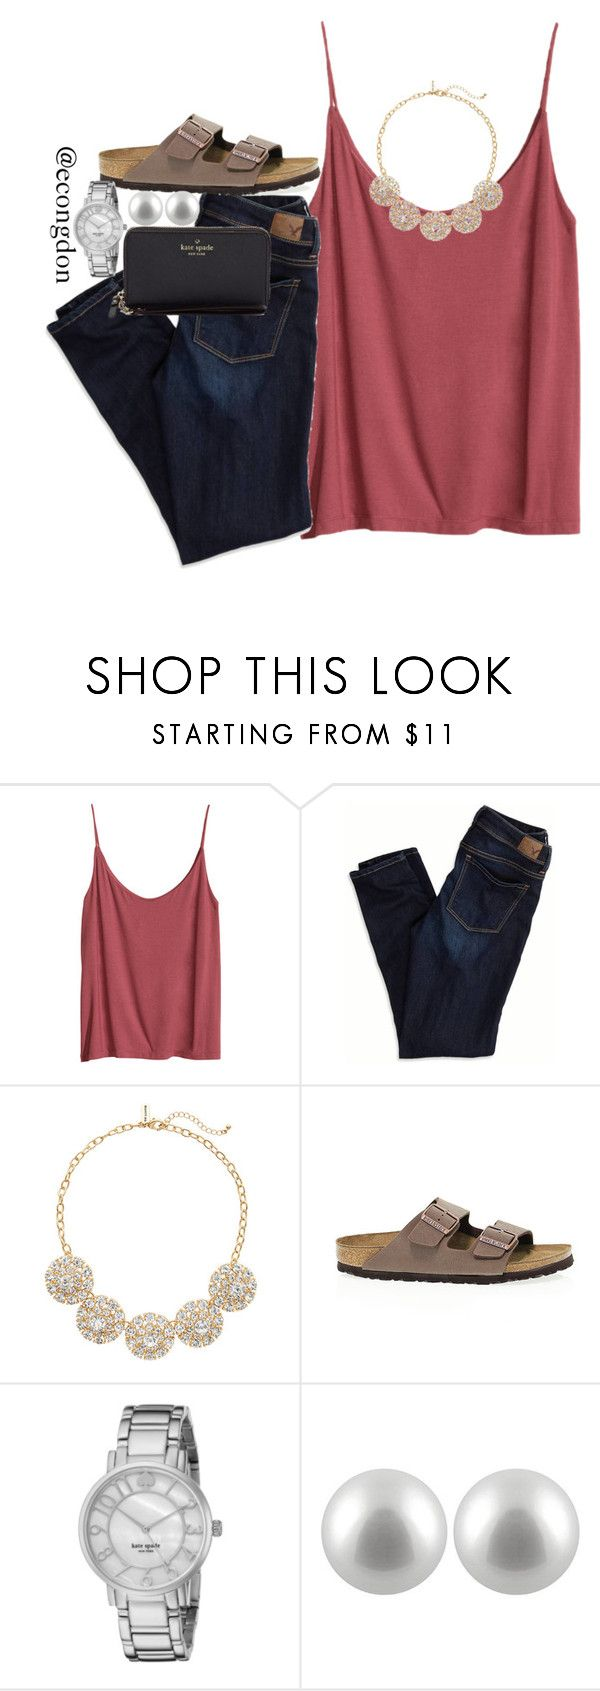 """""""birks!"""" by econgdon ❤ liked on Polyvore featuring H&M, American Eagle Outfitters, The Limited, Birkenstock, Kate Spade and Splendid Pearls"""